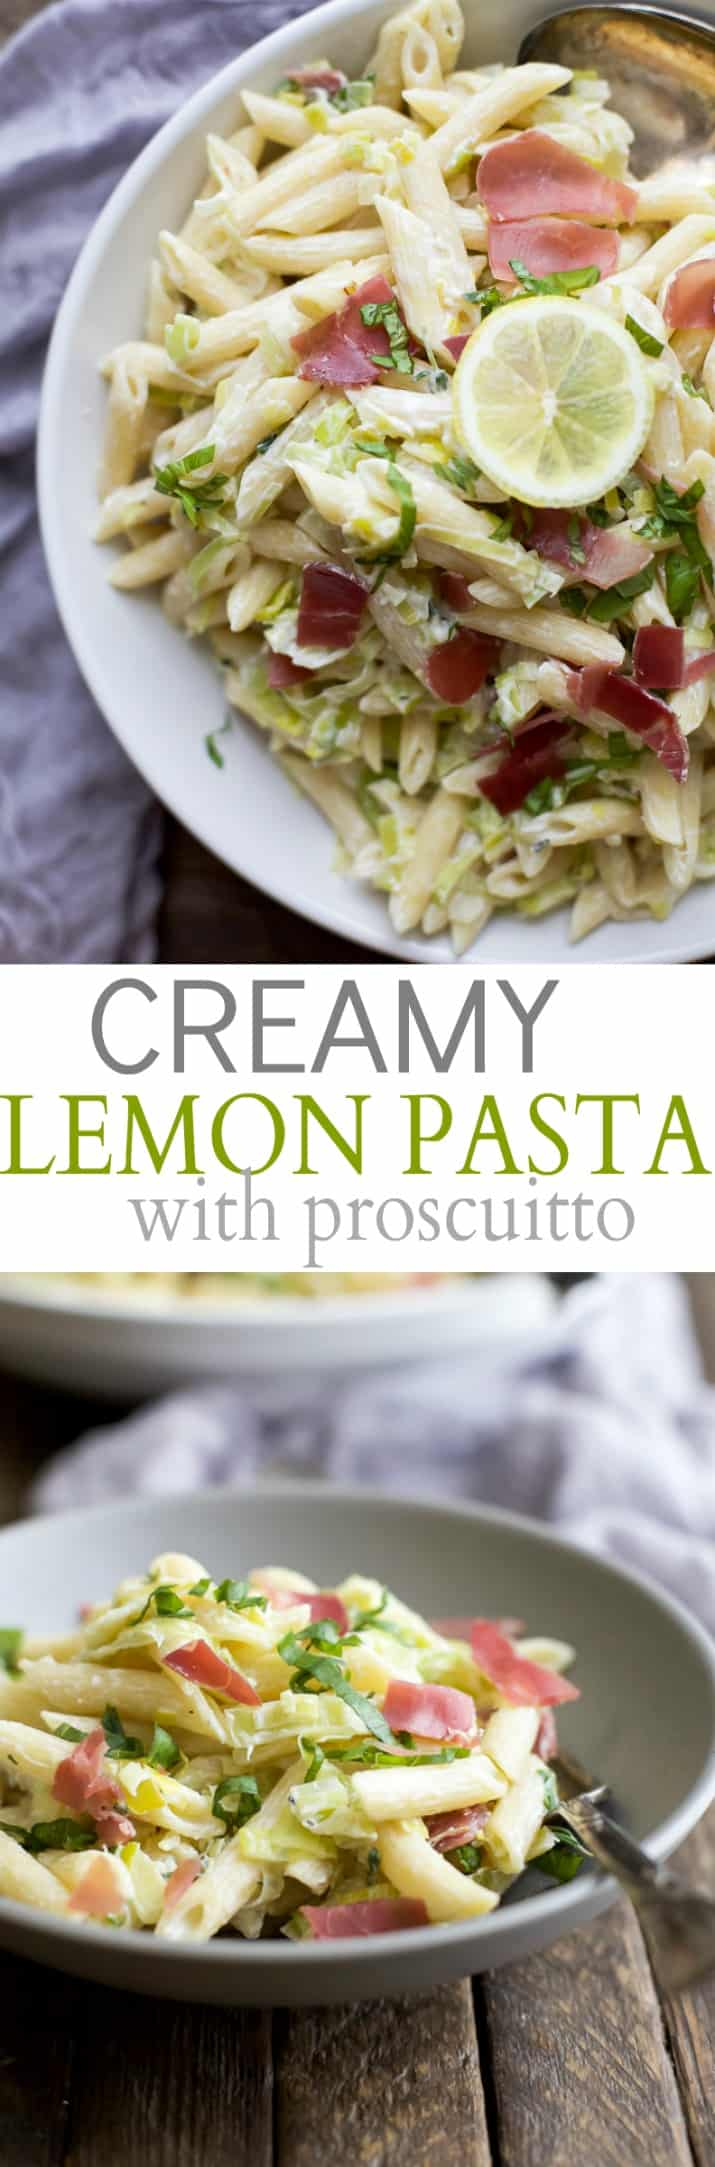 Collage for Creamy Lemon Pasta with Prosciutto recipe